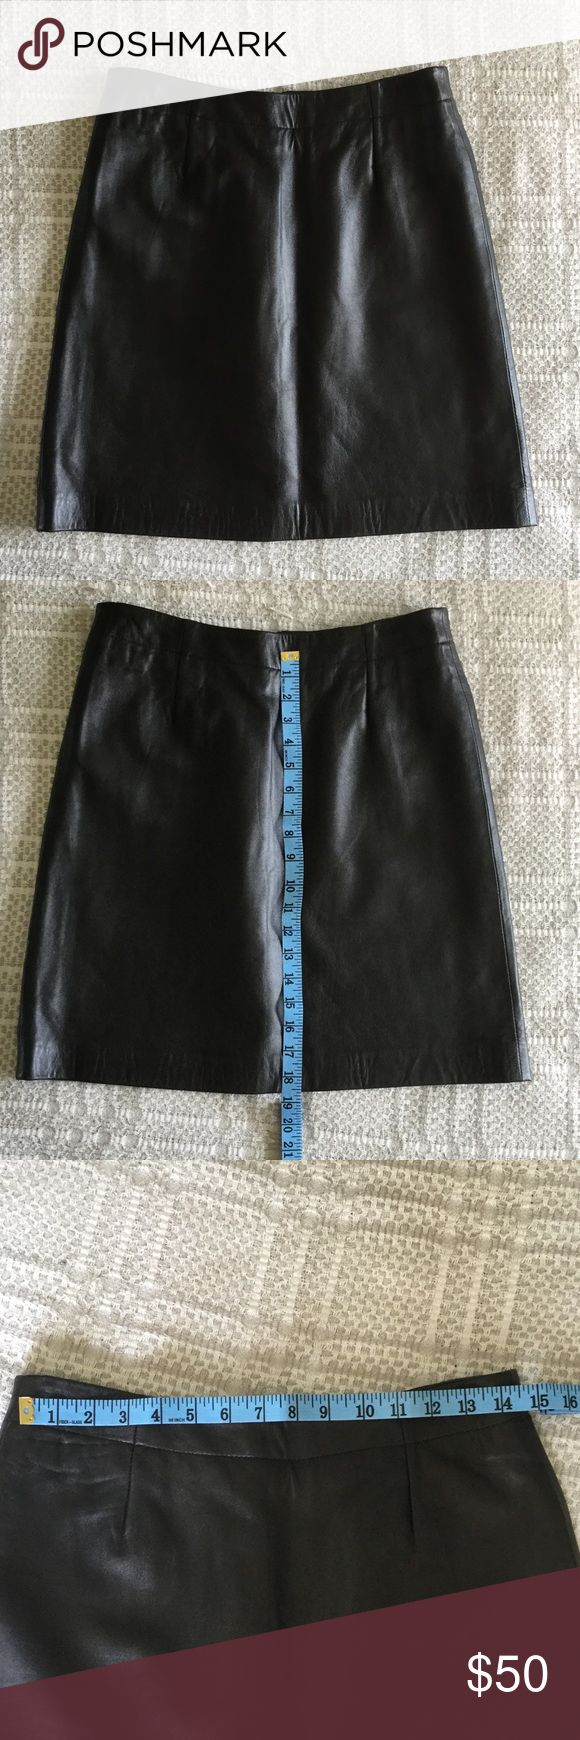 DKNY Black leather skirt 100% genuine leather with liner. Zipper in the back DKNY Skirts Midi